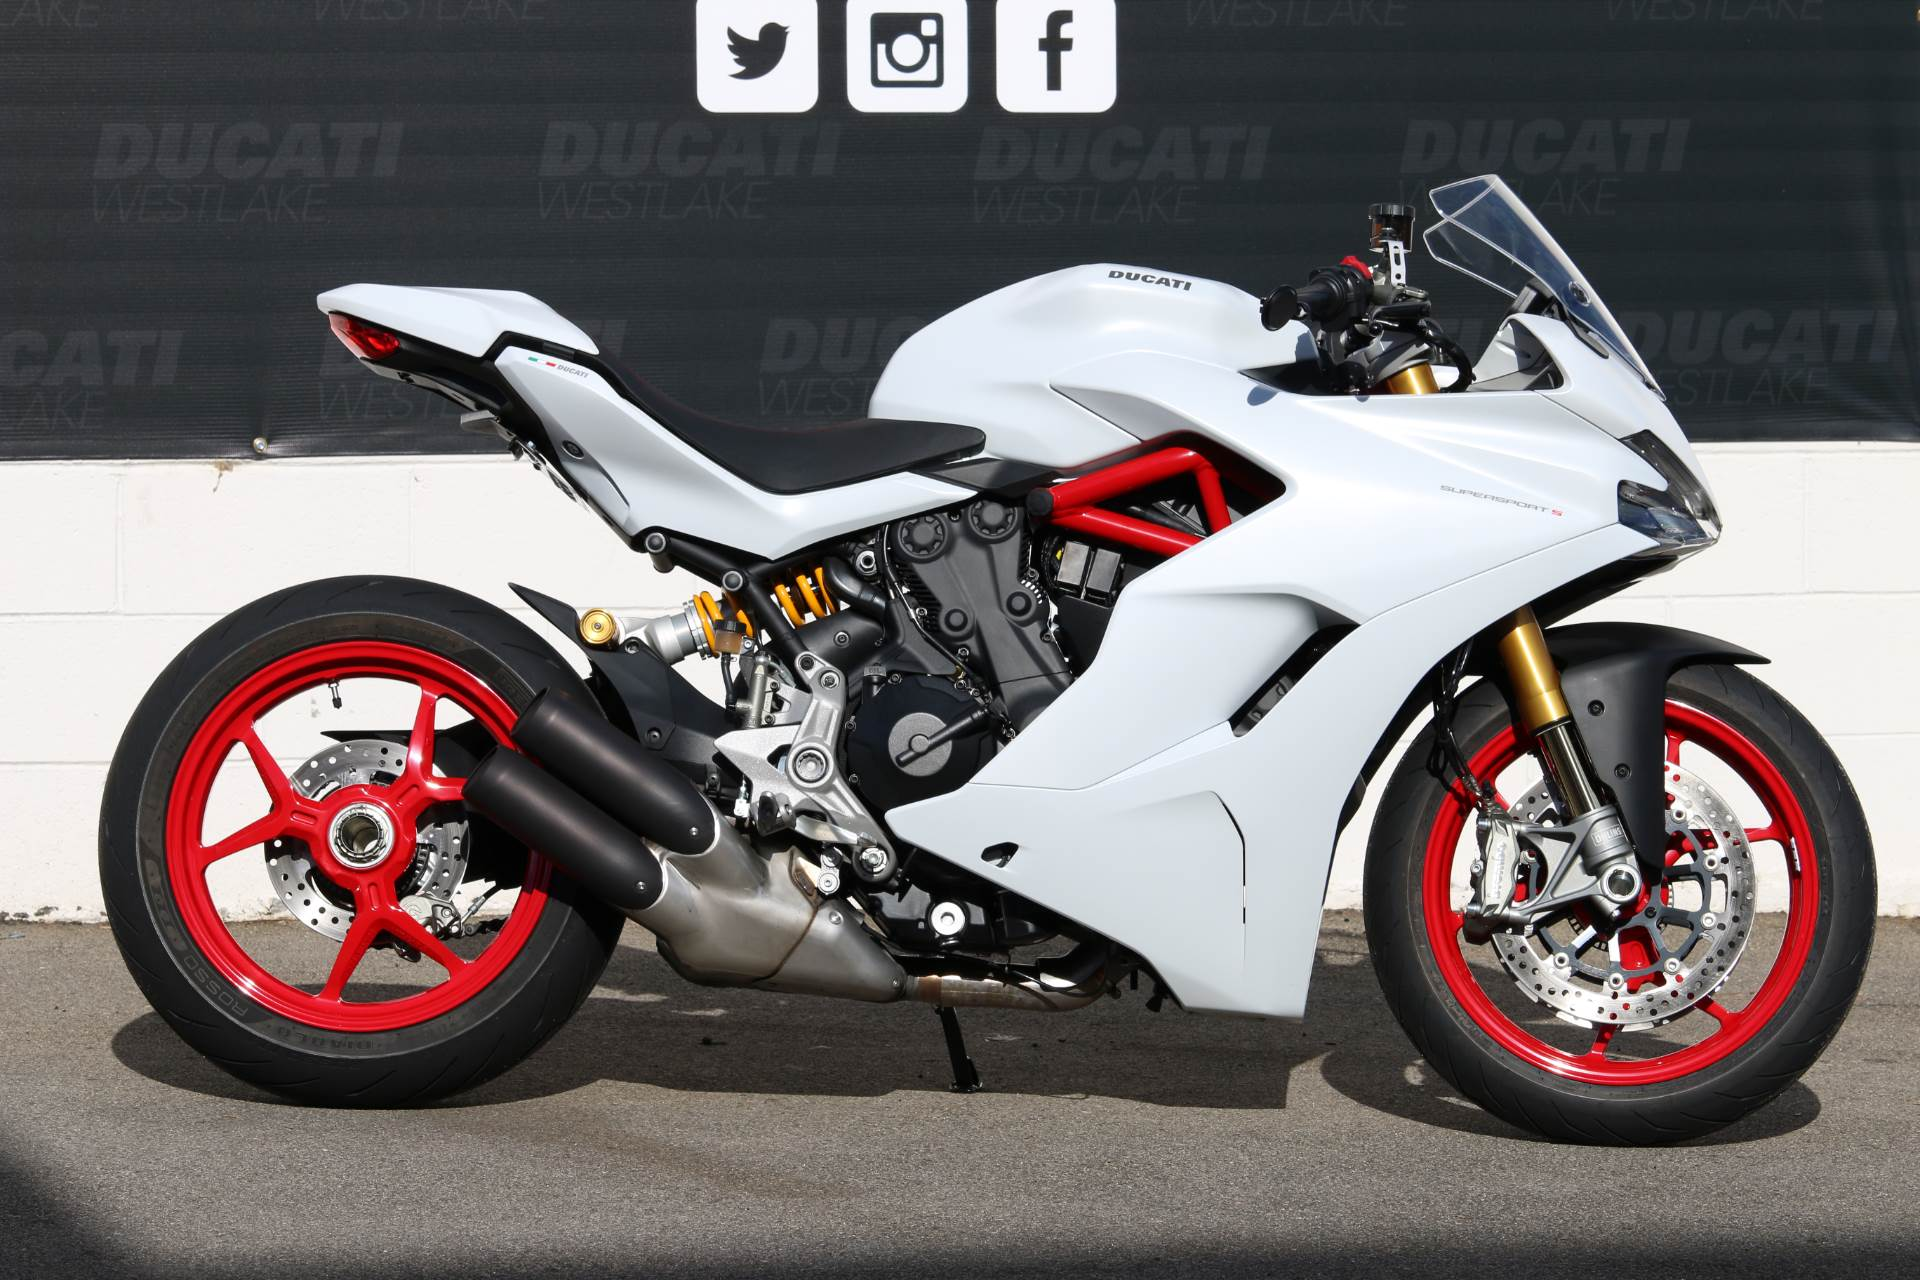 Ducati Supersort S Price